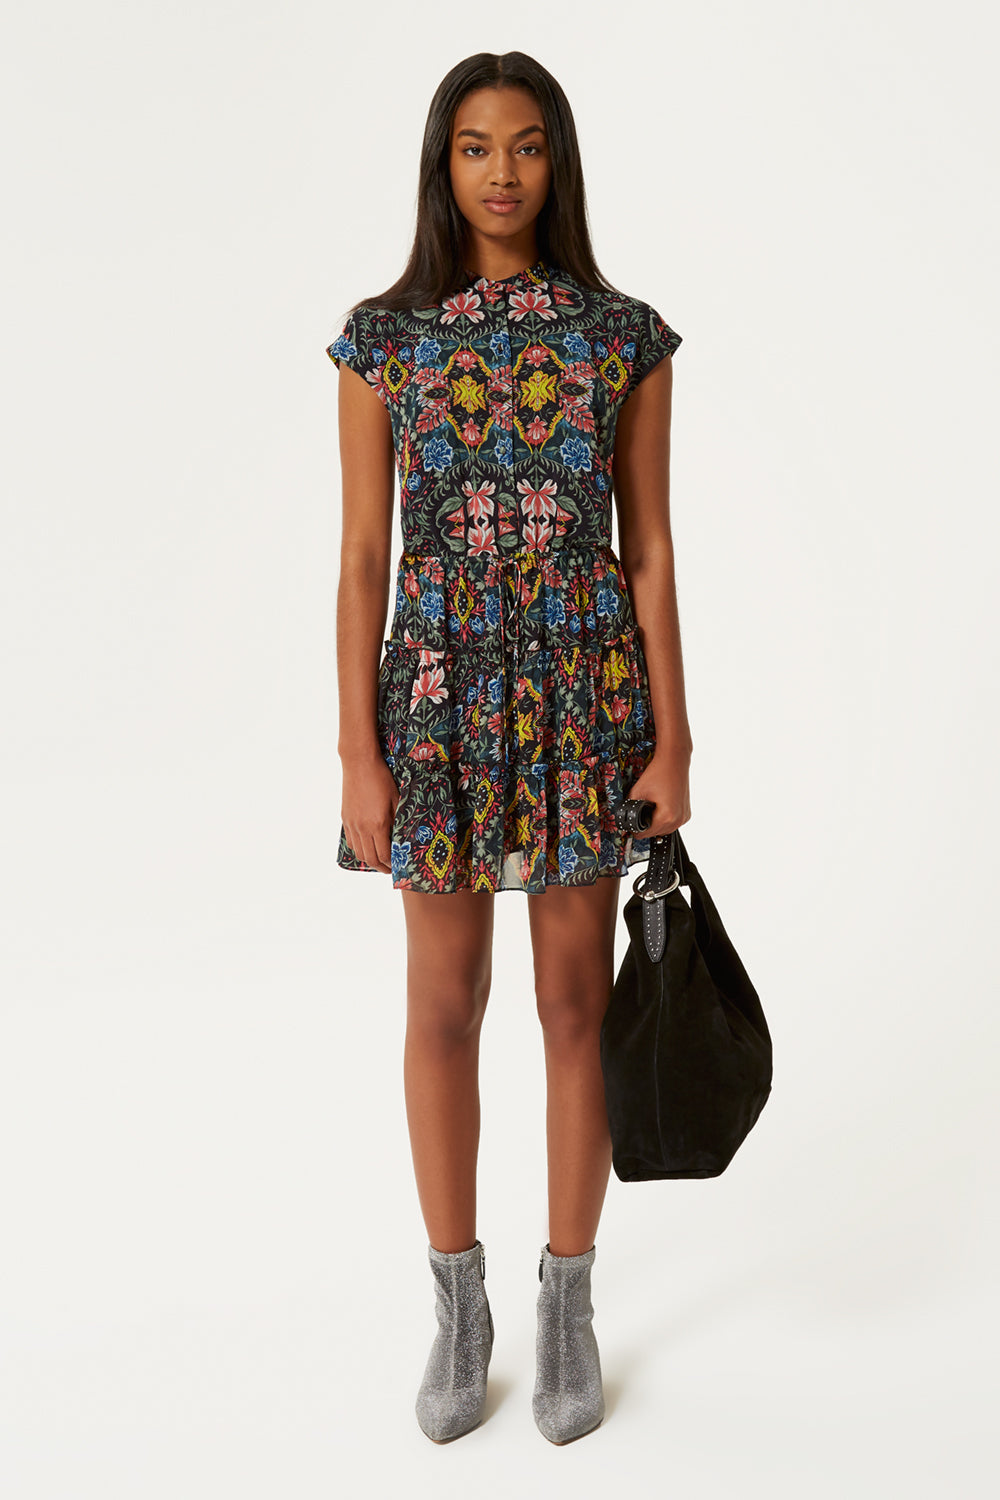 Ollie Floral-Print Cap-Sleeve Dress in Multi from REBECCA MINKOFF